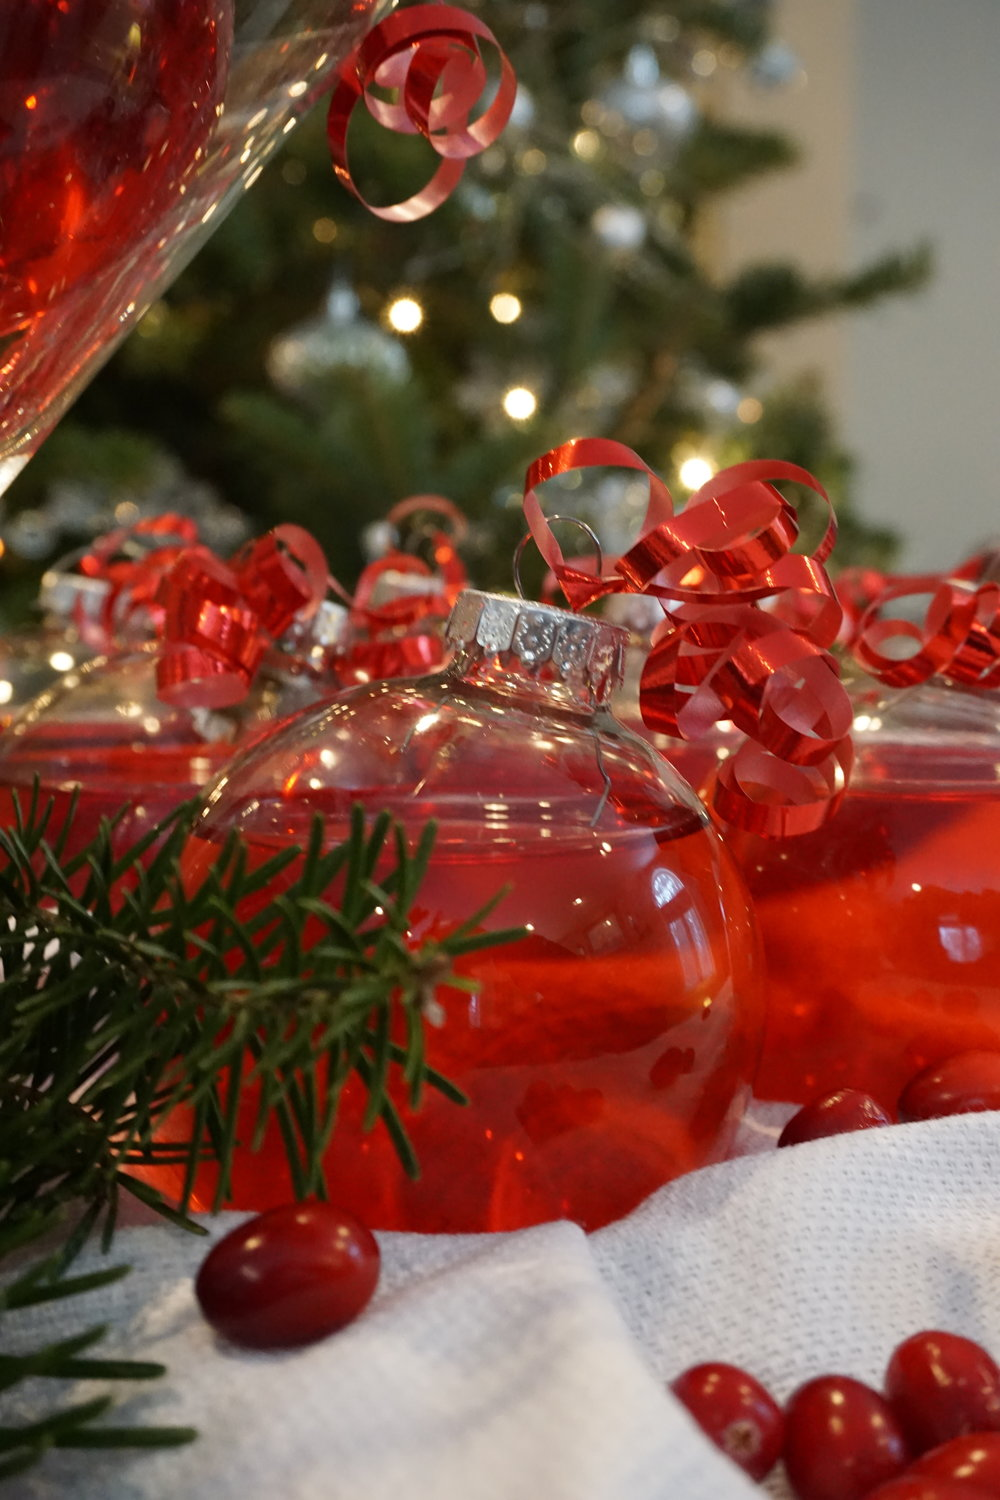 Christmas ornaments for martinis or cocktails